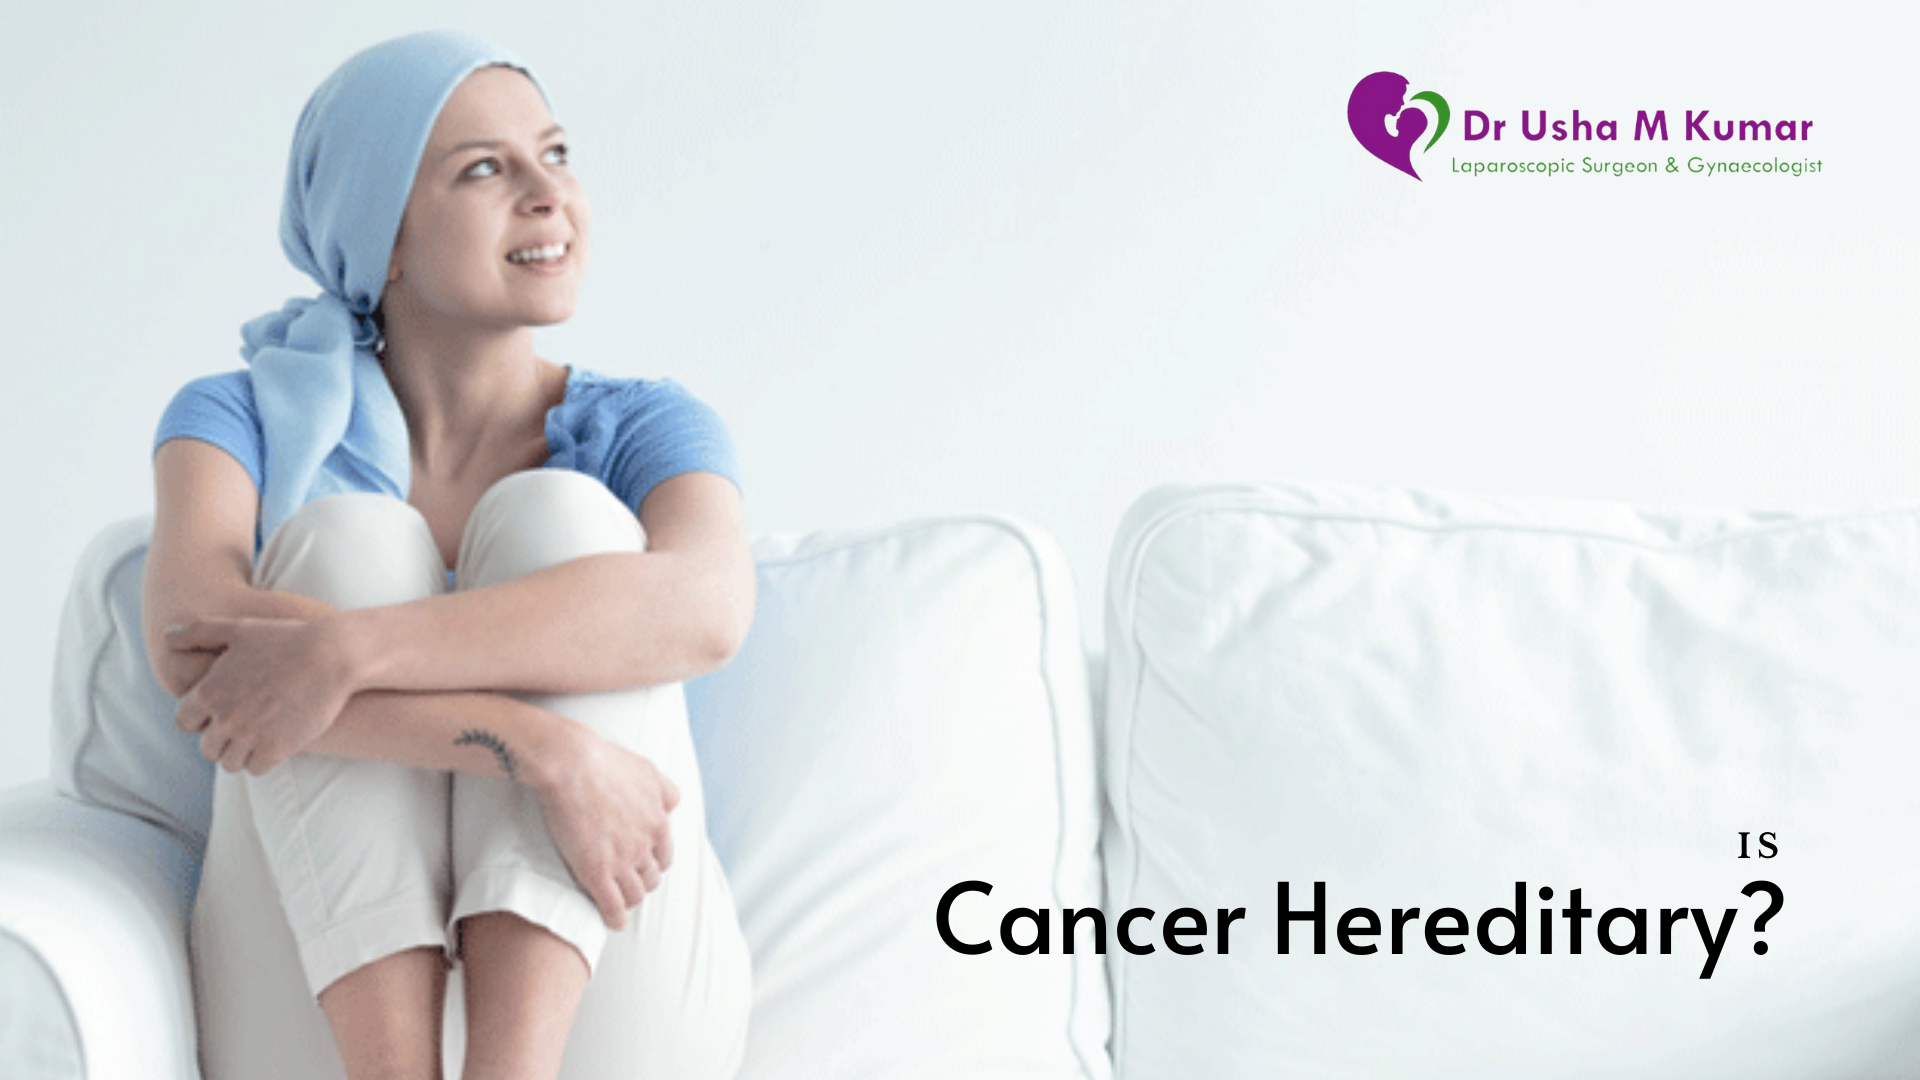 Is Cancer Hereditary